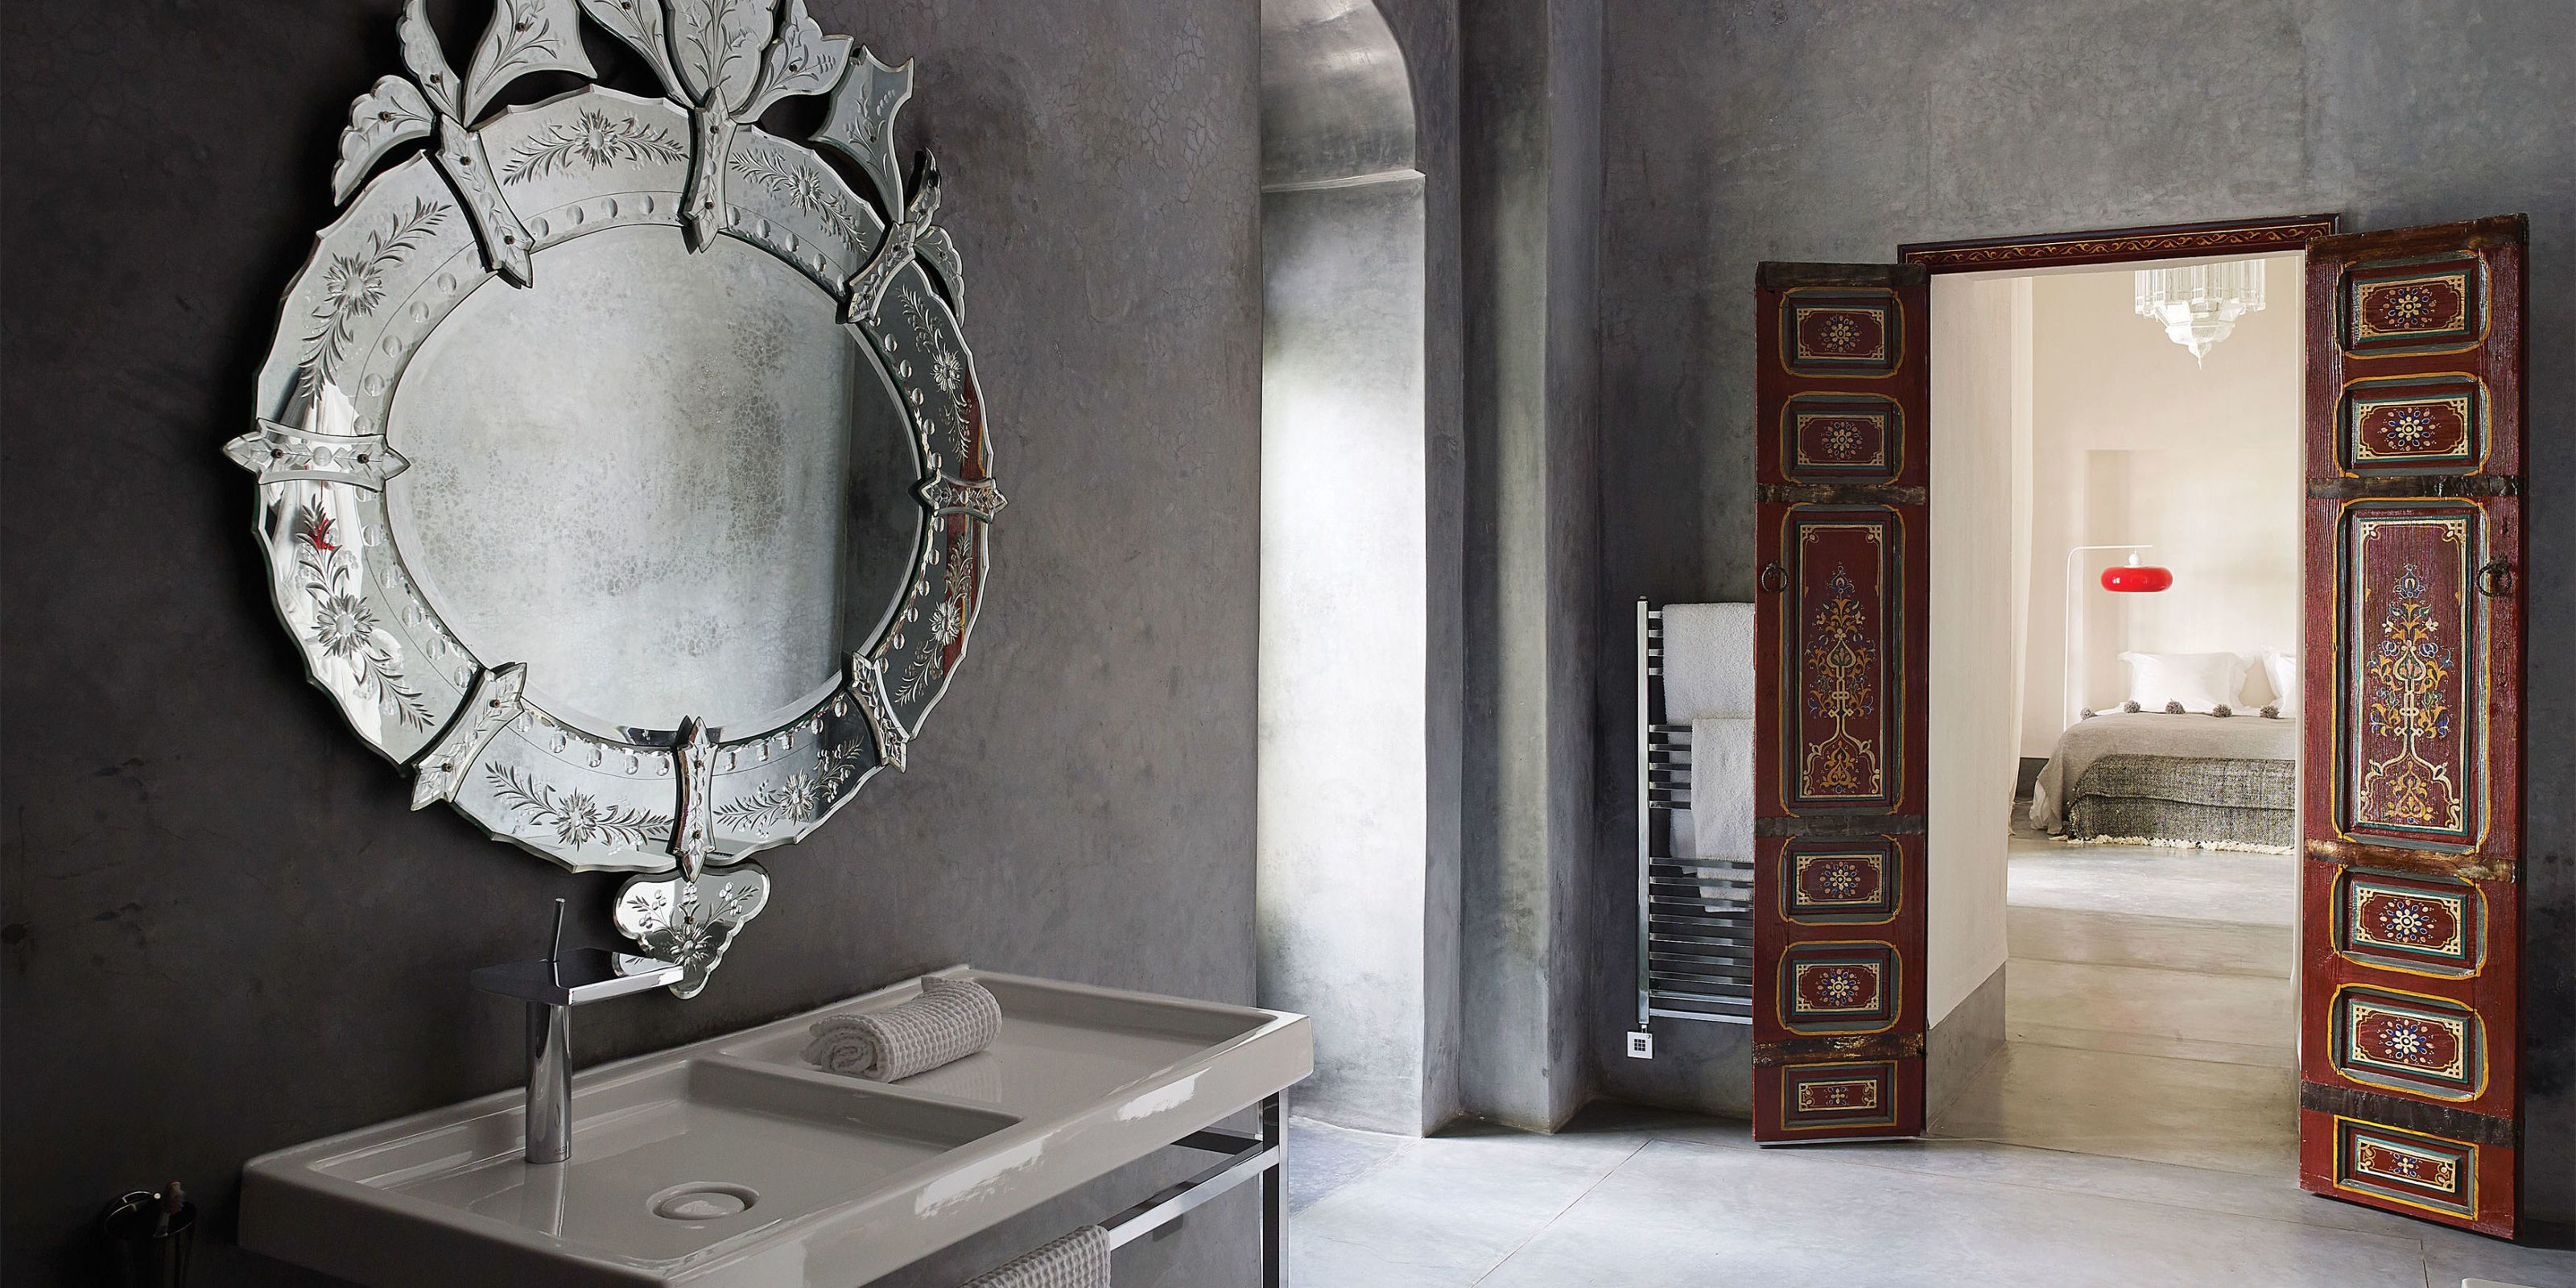 20 Bathroom Mirrors To Inspire Powder Room Design